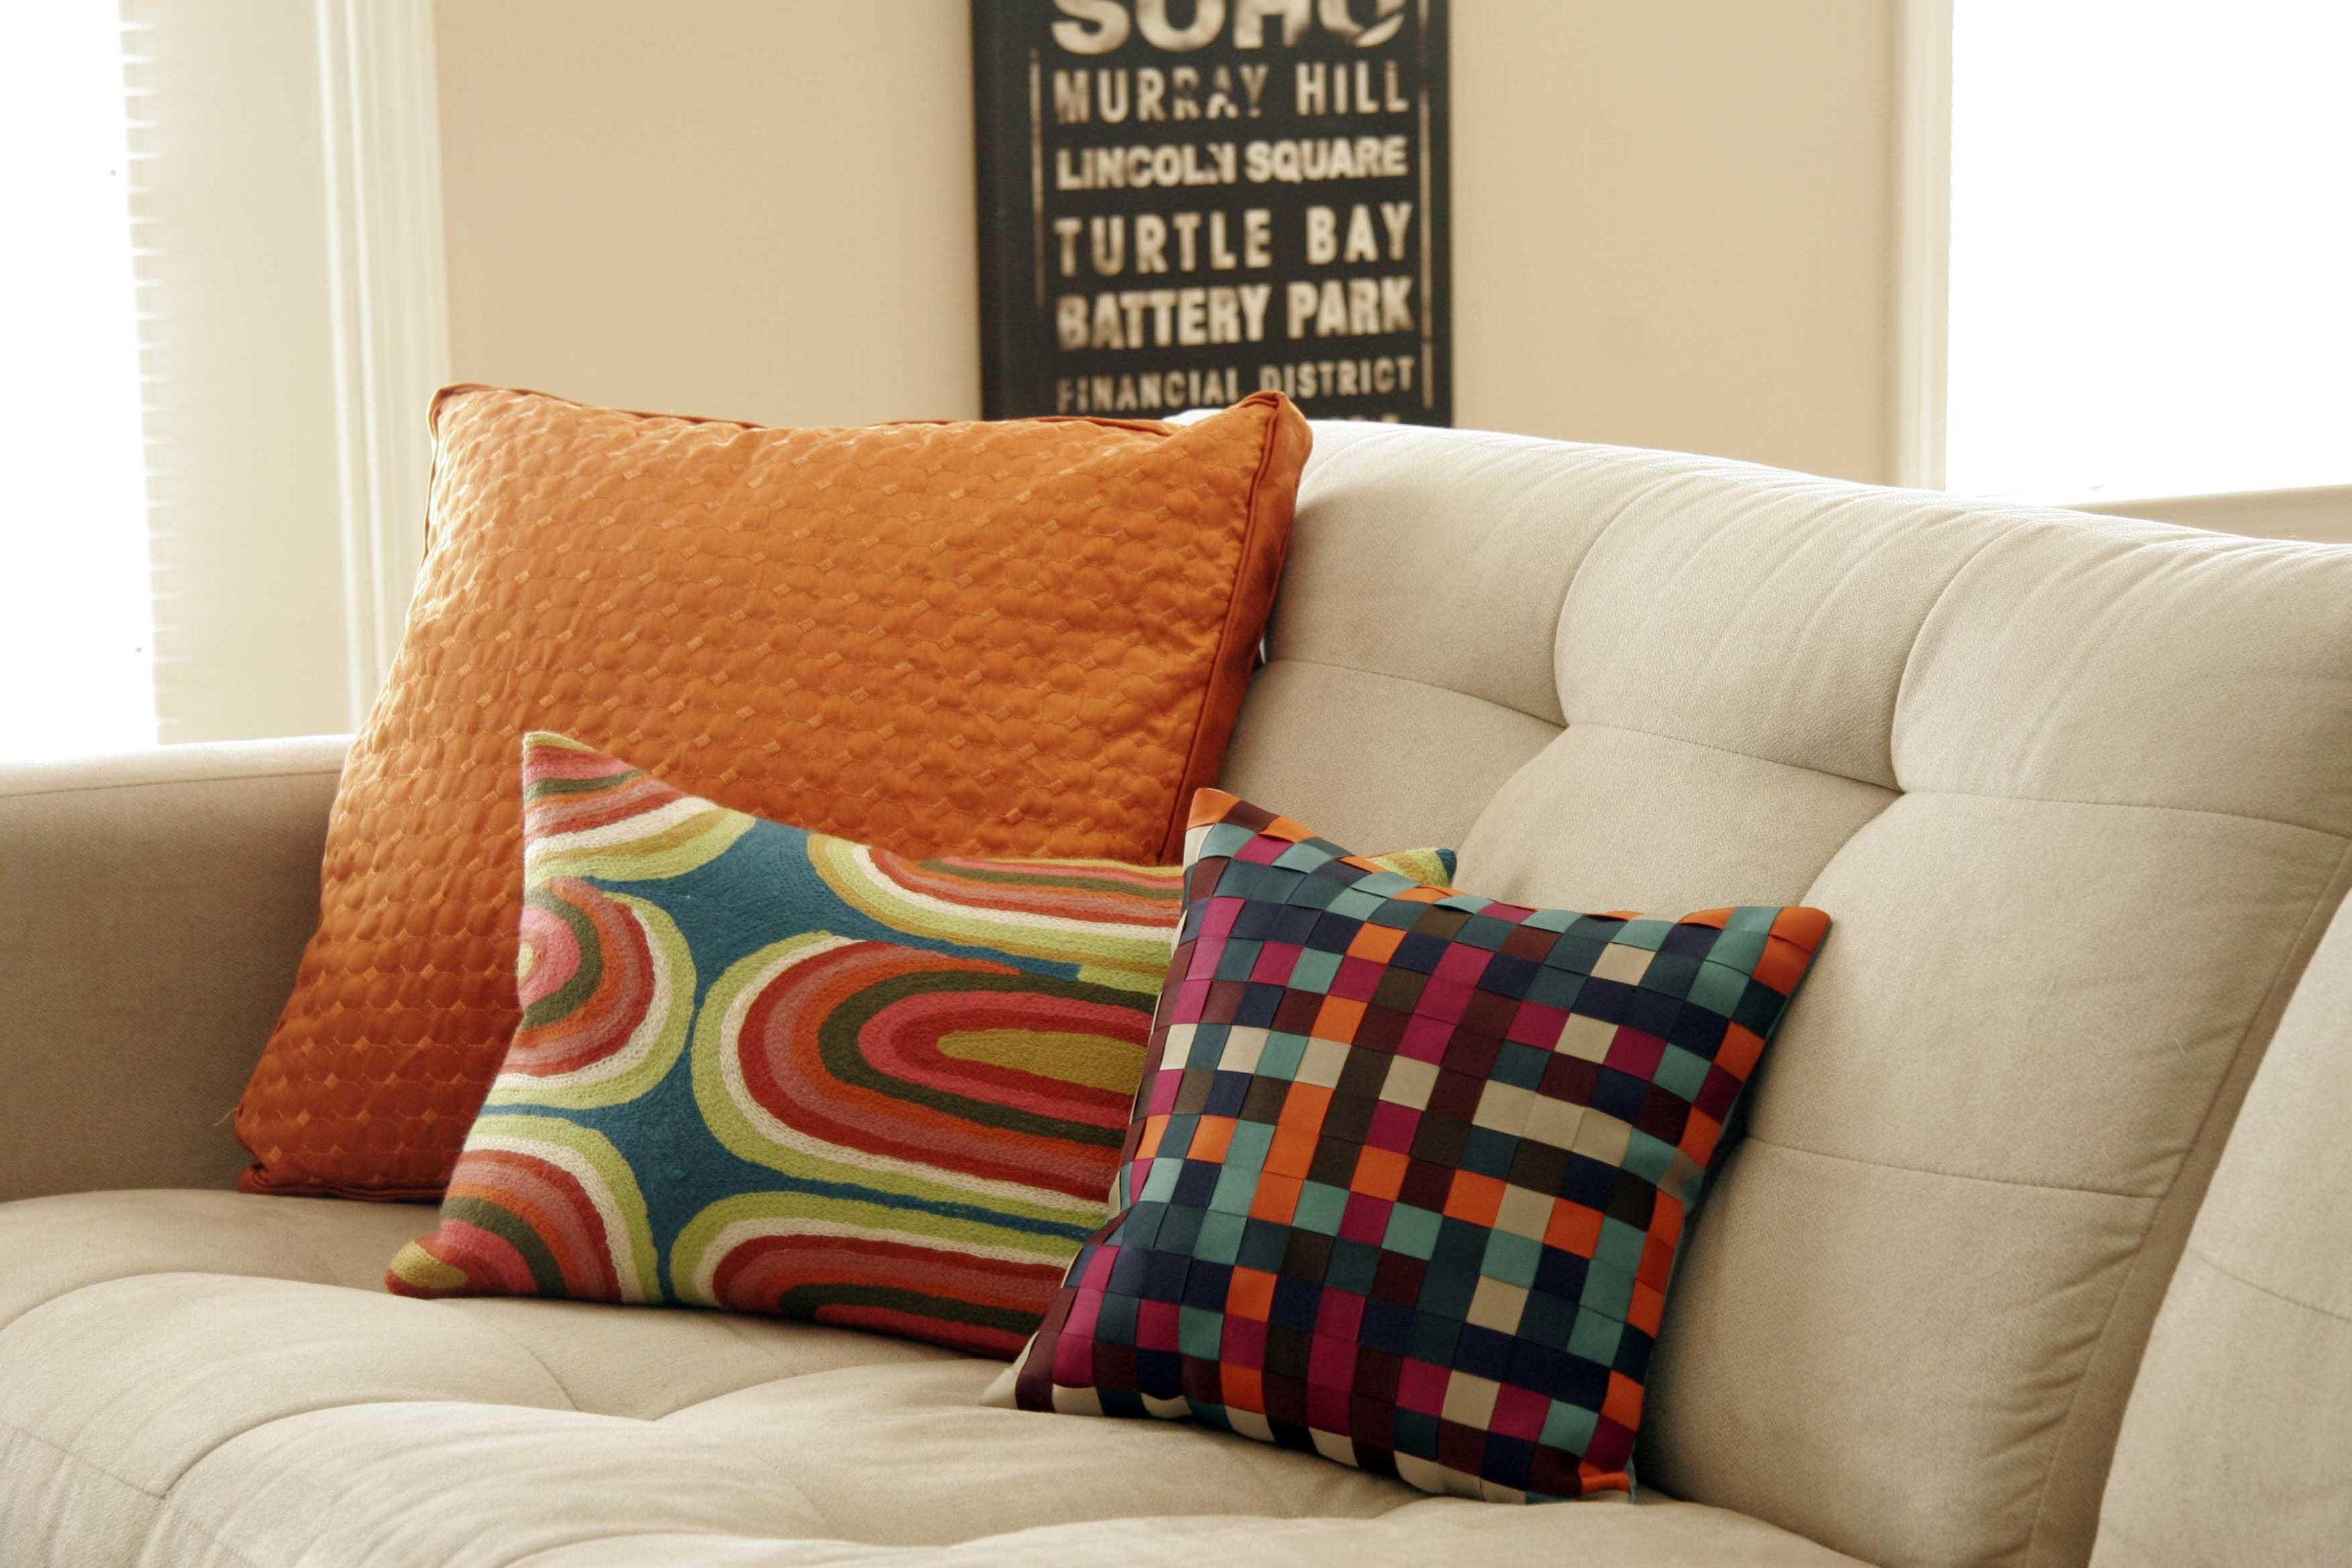 Cozy throw pillows for couch with sofa for living room with decorative throw pillows for couch